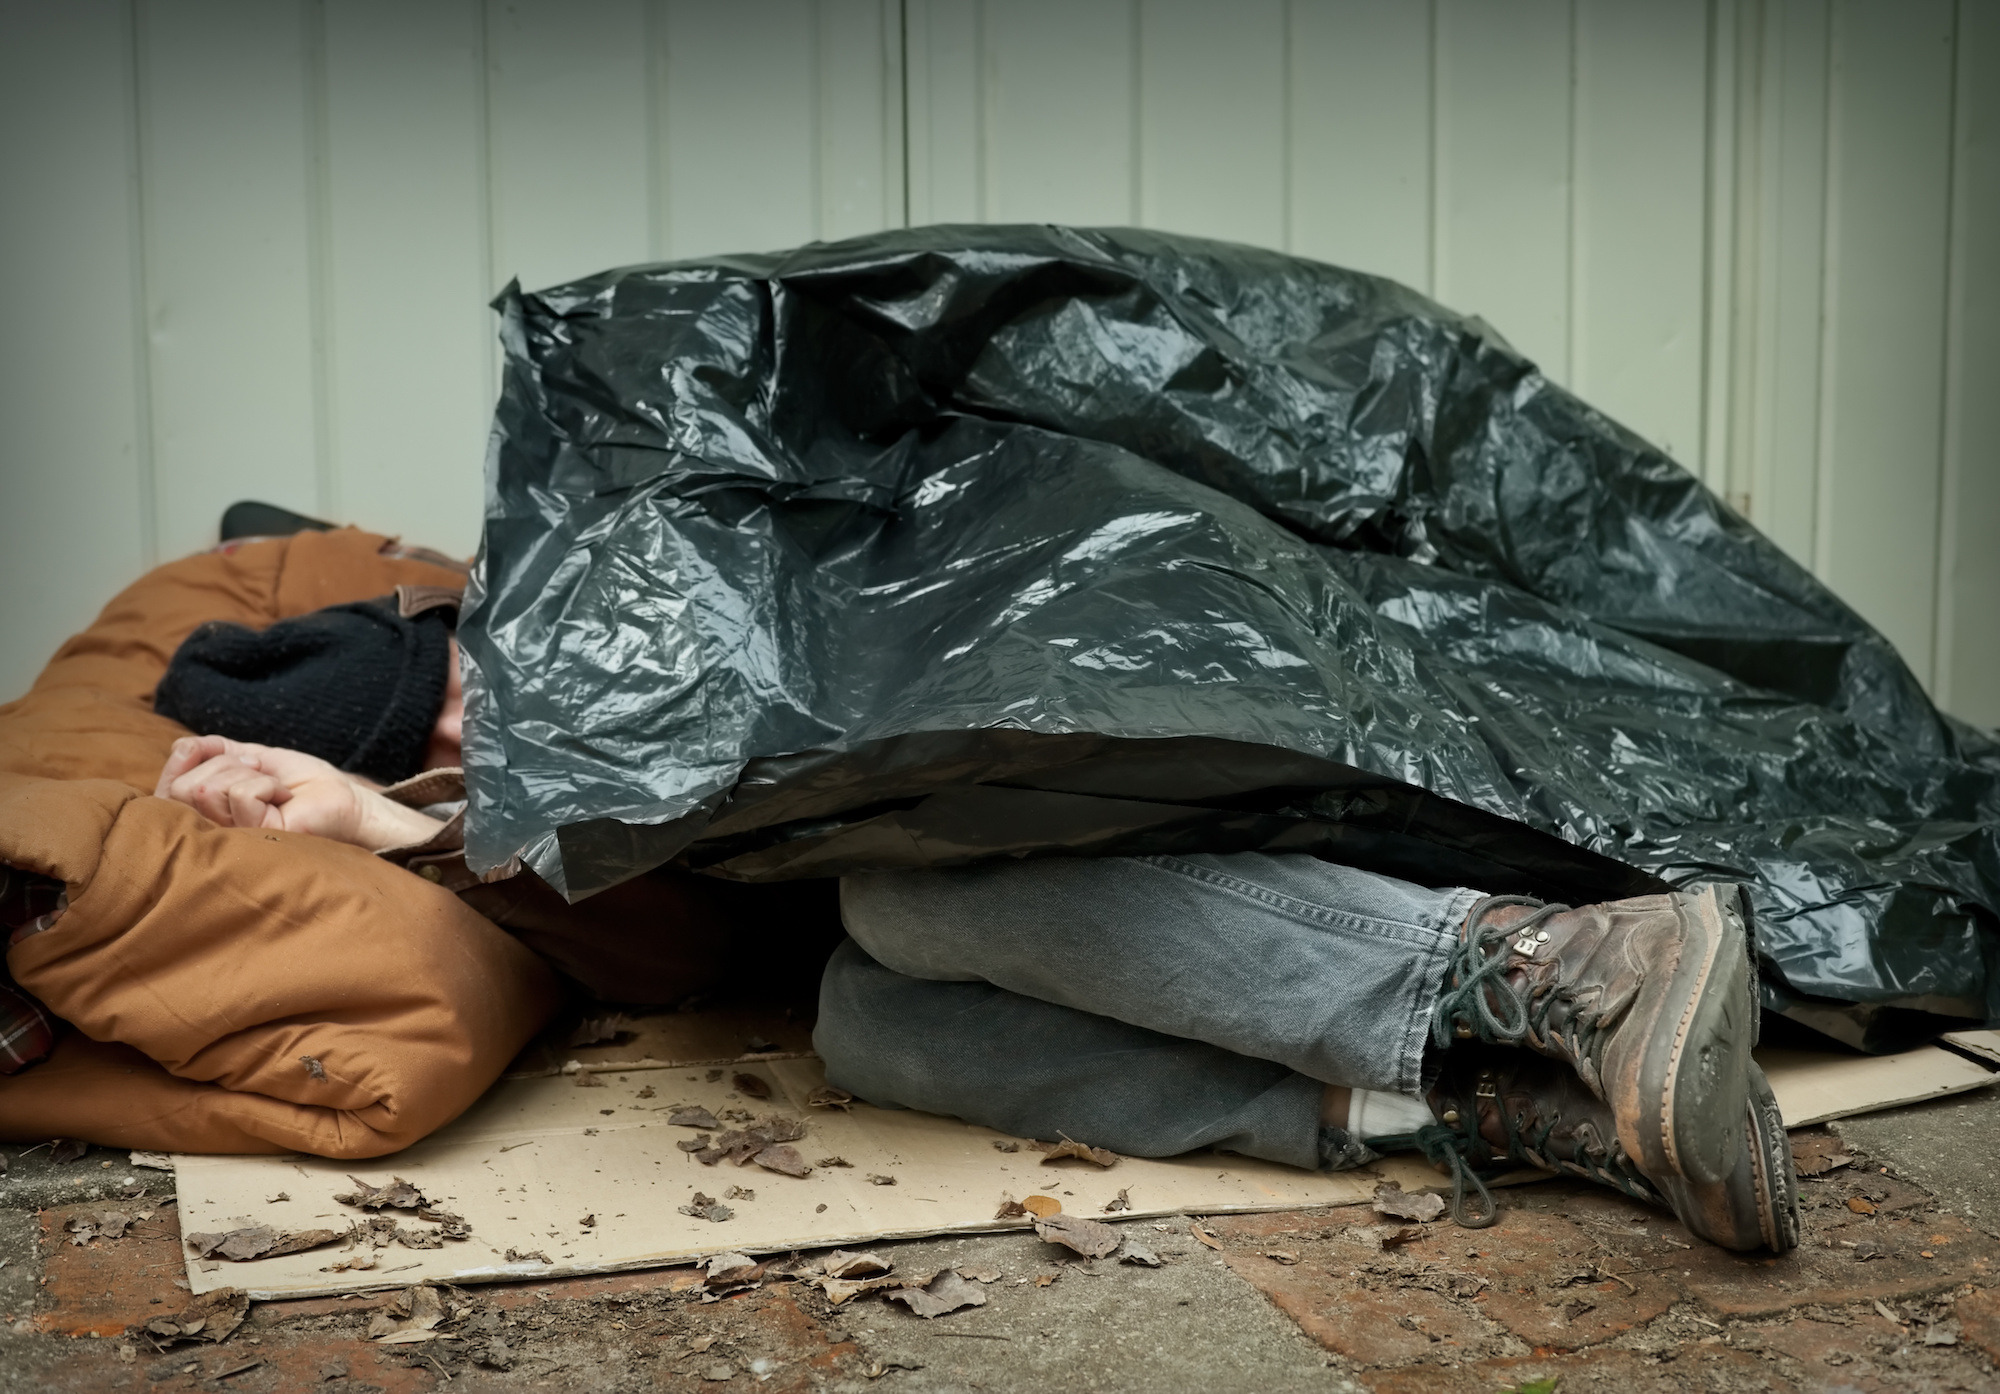 Region will see 73 additional shelter beds this winter